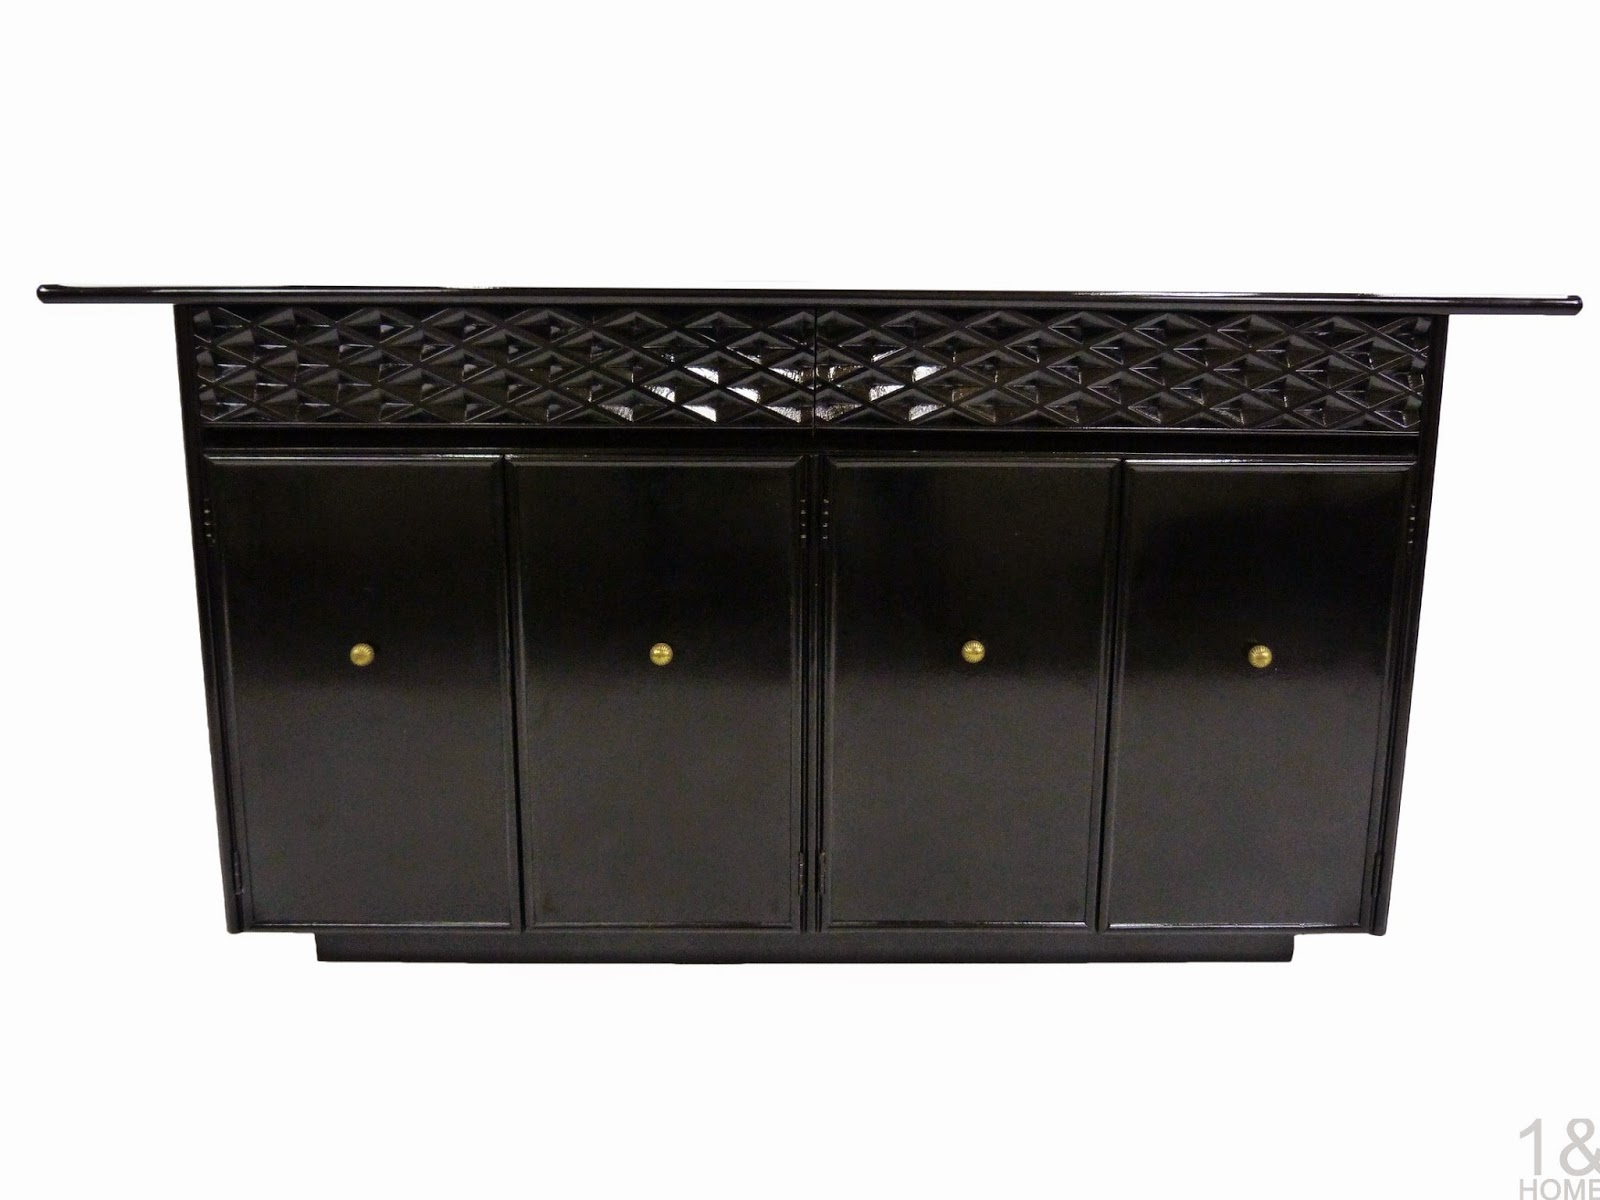 Ebonized mid-century modern Black Lacquered Empire Contemporar Furniture Credenza Sideboard